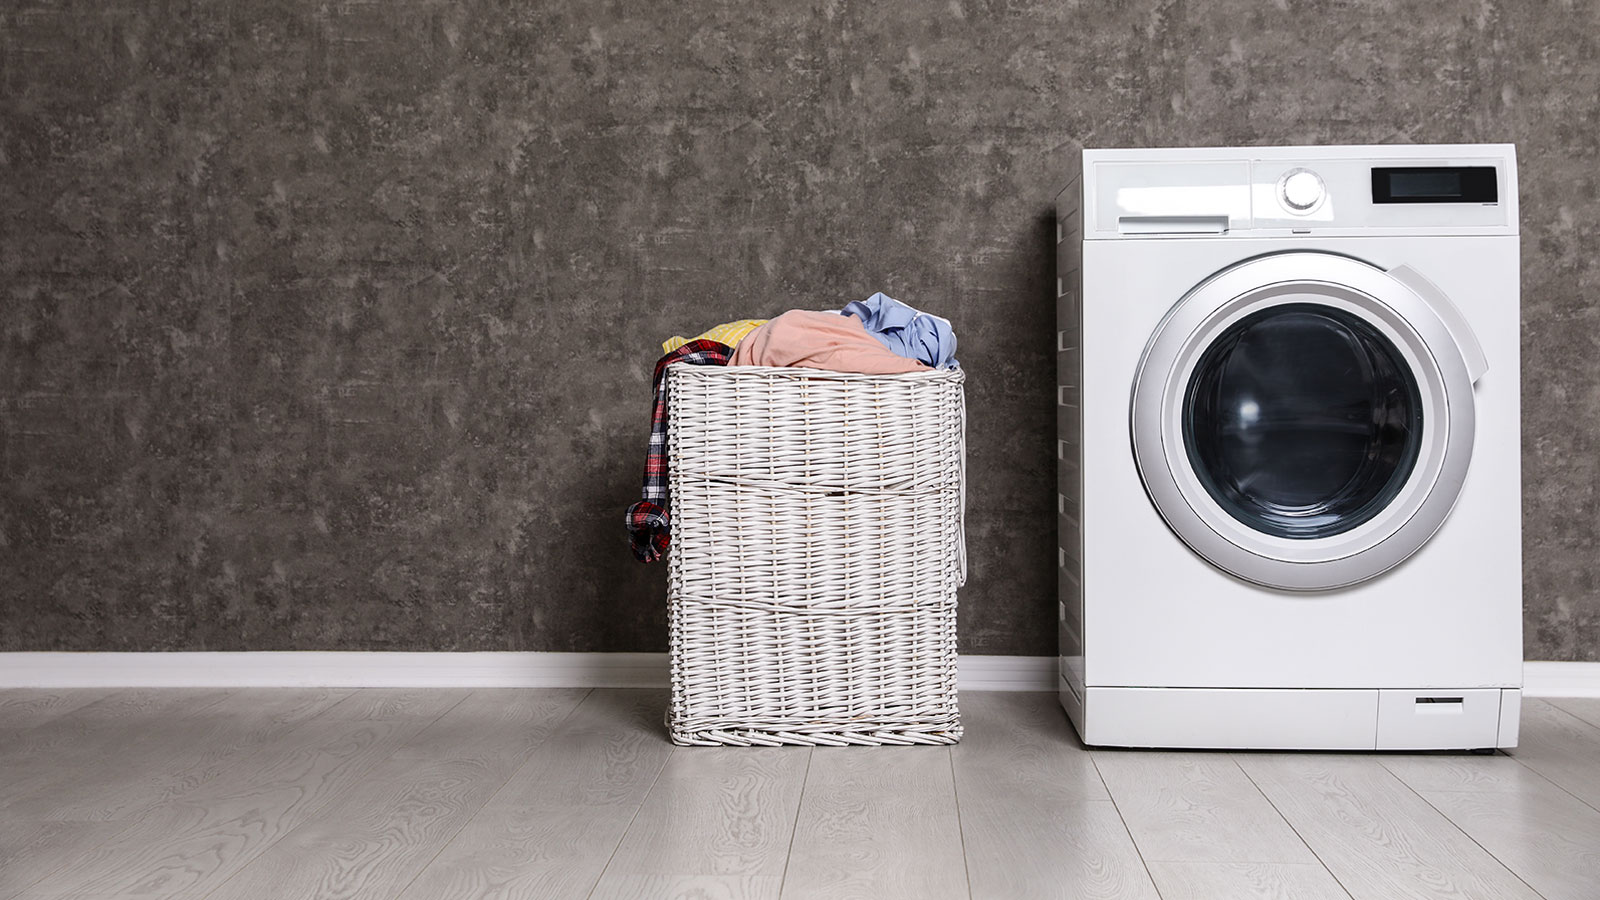 Wicker laundry basket and washing machine